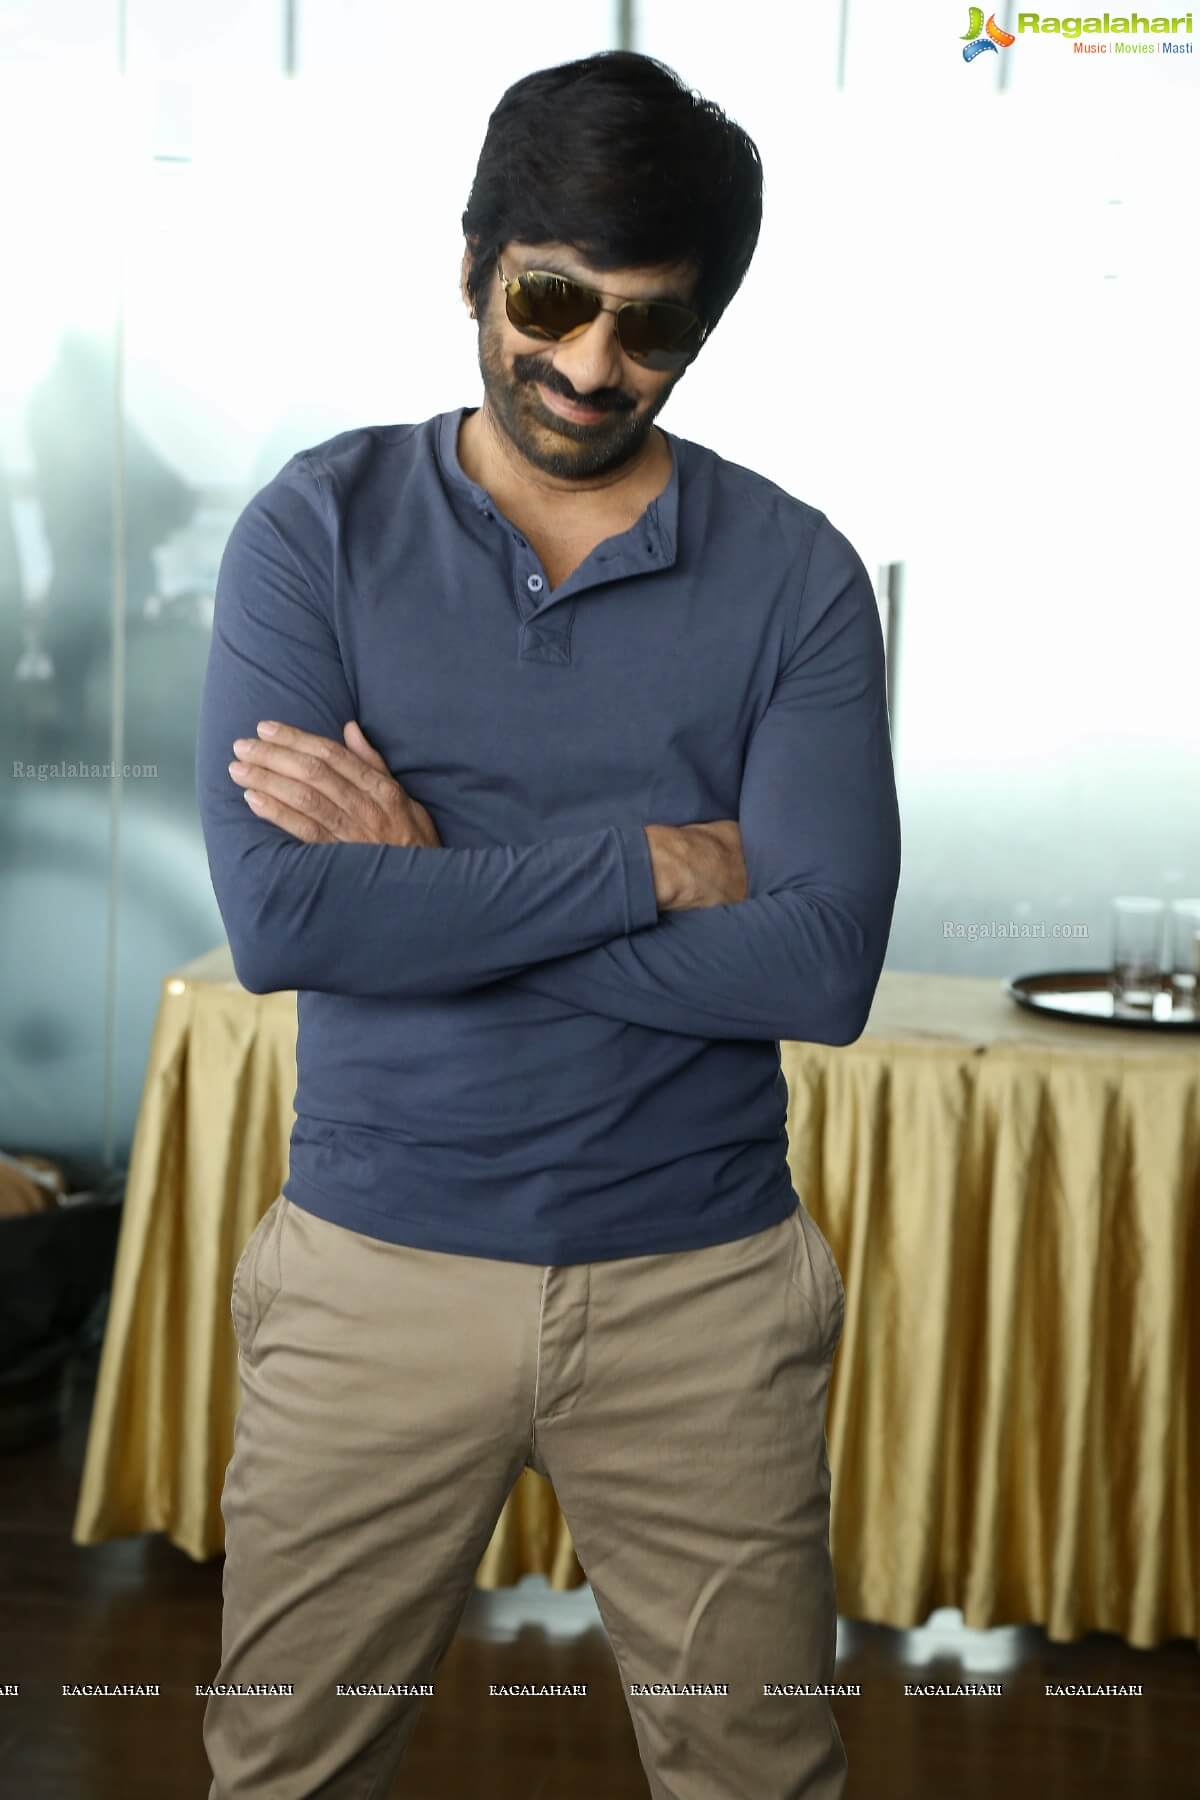 Ravi Teja Movie, Photos(images), Date Of Birth, Family, Brother, Height, Biography, Net Worth, Age, Wife, Details, Education, Instagram, Twitter, Wiki, Imdb, Facebook, Hairstyle, Youtube (9)